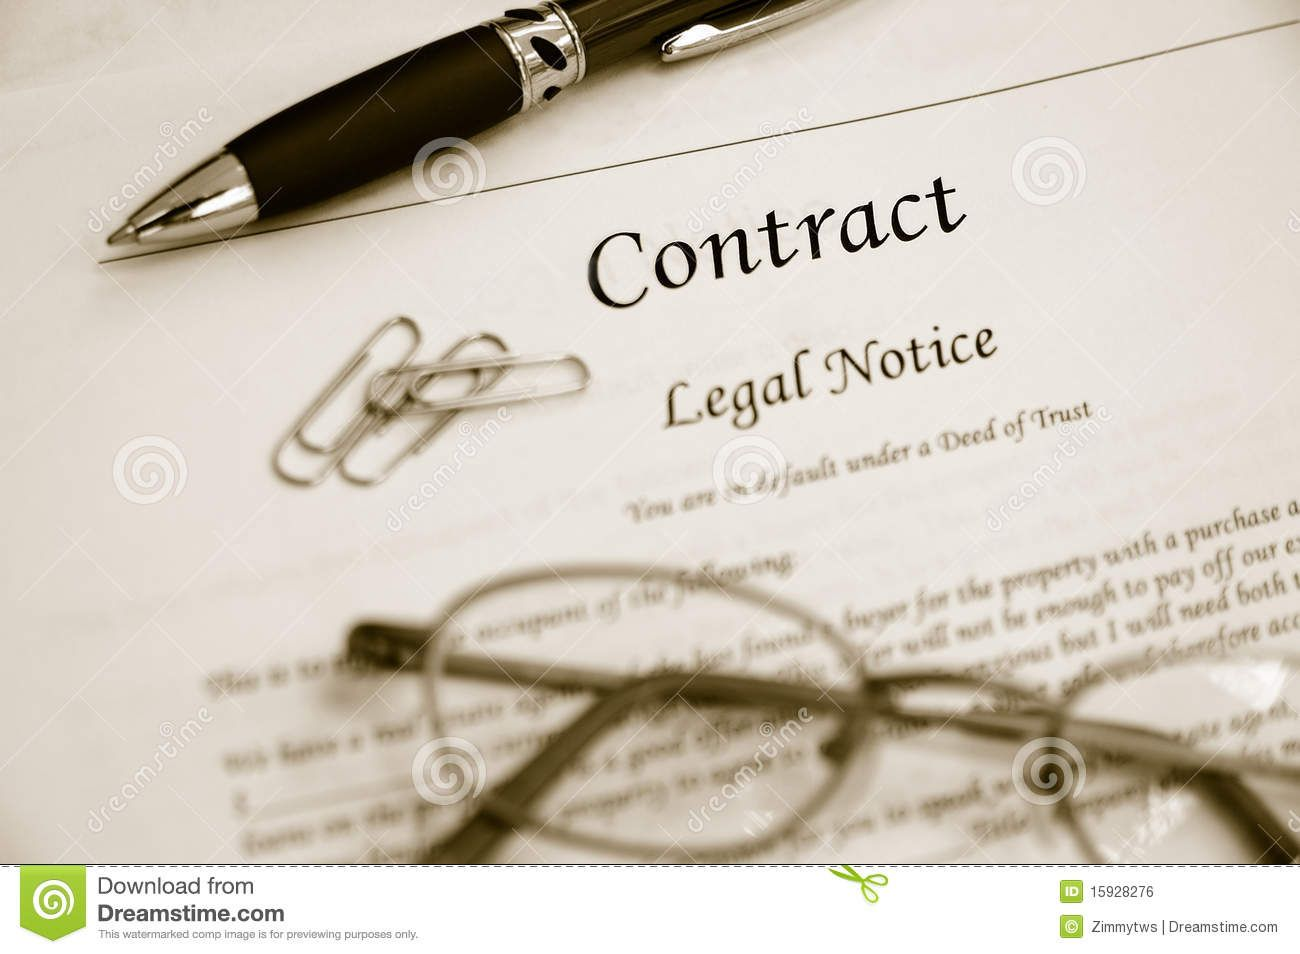 Legal Contract Royalty Free Stock Image - Image: 15928276 - legal ...